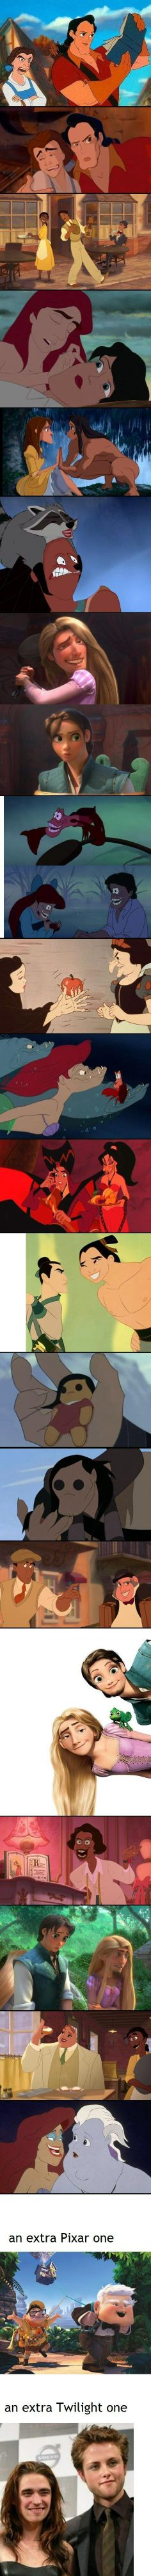 Disney Face Swaps     gotta do some of these